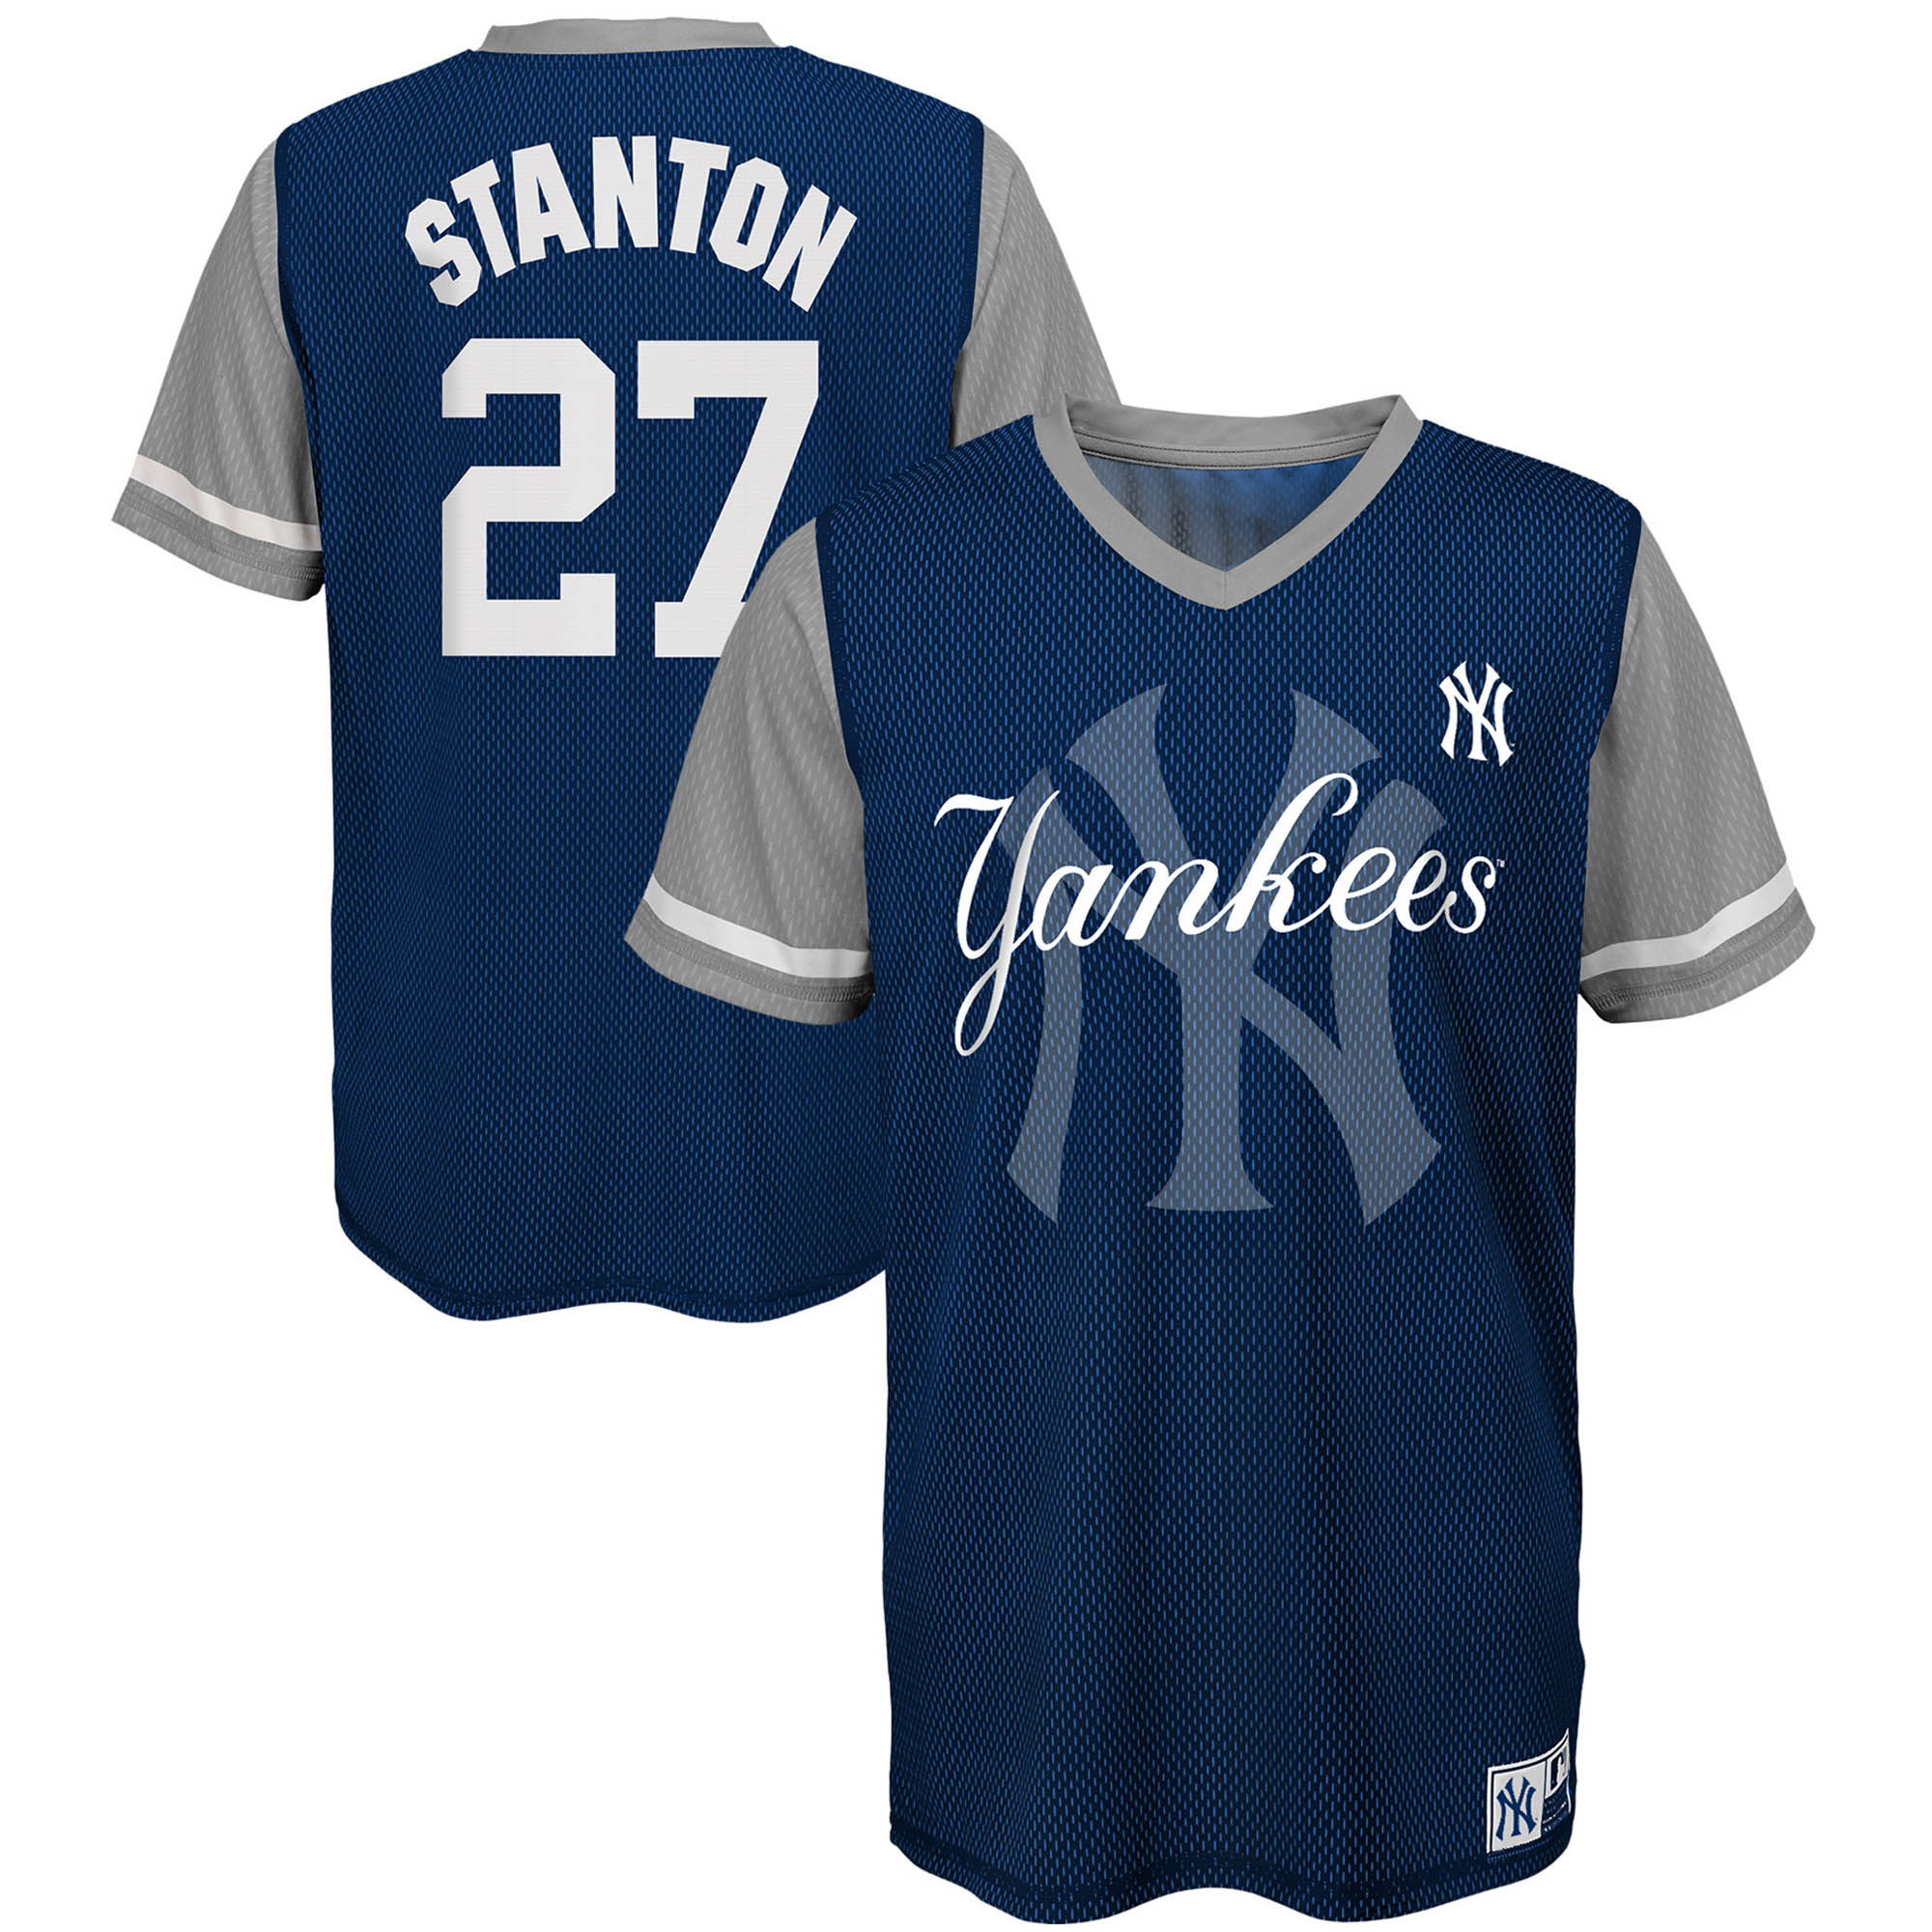 Giancarlo Stanton New York Yankees Majestic Youth Play Hard Player V-Neck Jersey T-Shirt - Navy/Gray